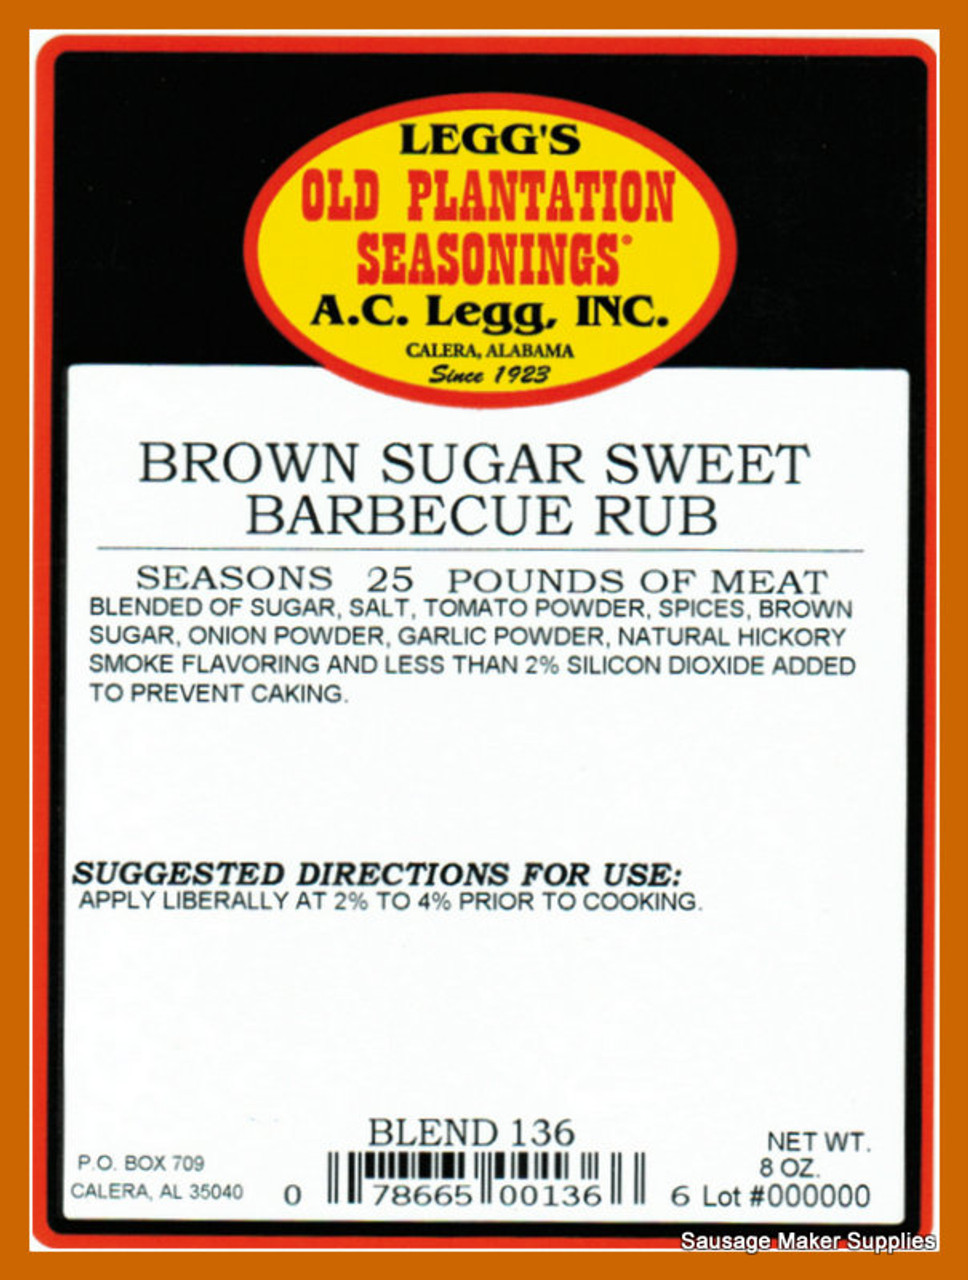 Brown Sugar BBQ  Blend 136  This rub will remind you of a St. Louis, Memphis, and Southern Barbecue all in one package. Sweet with a nice balance of onion, tomato, and smoke.